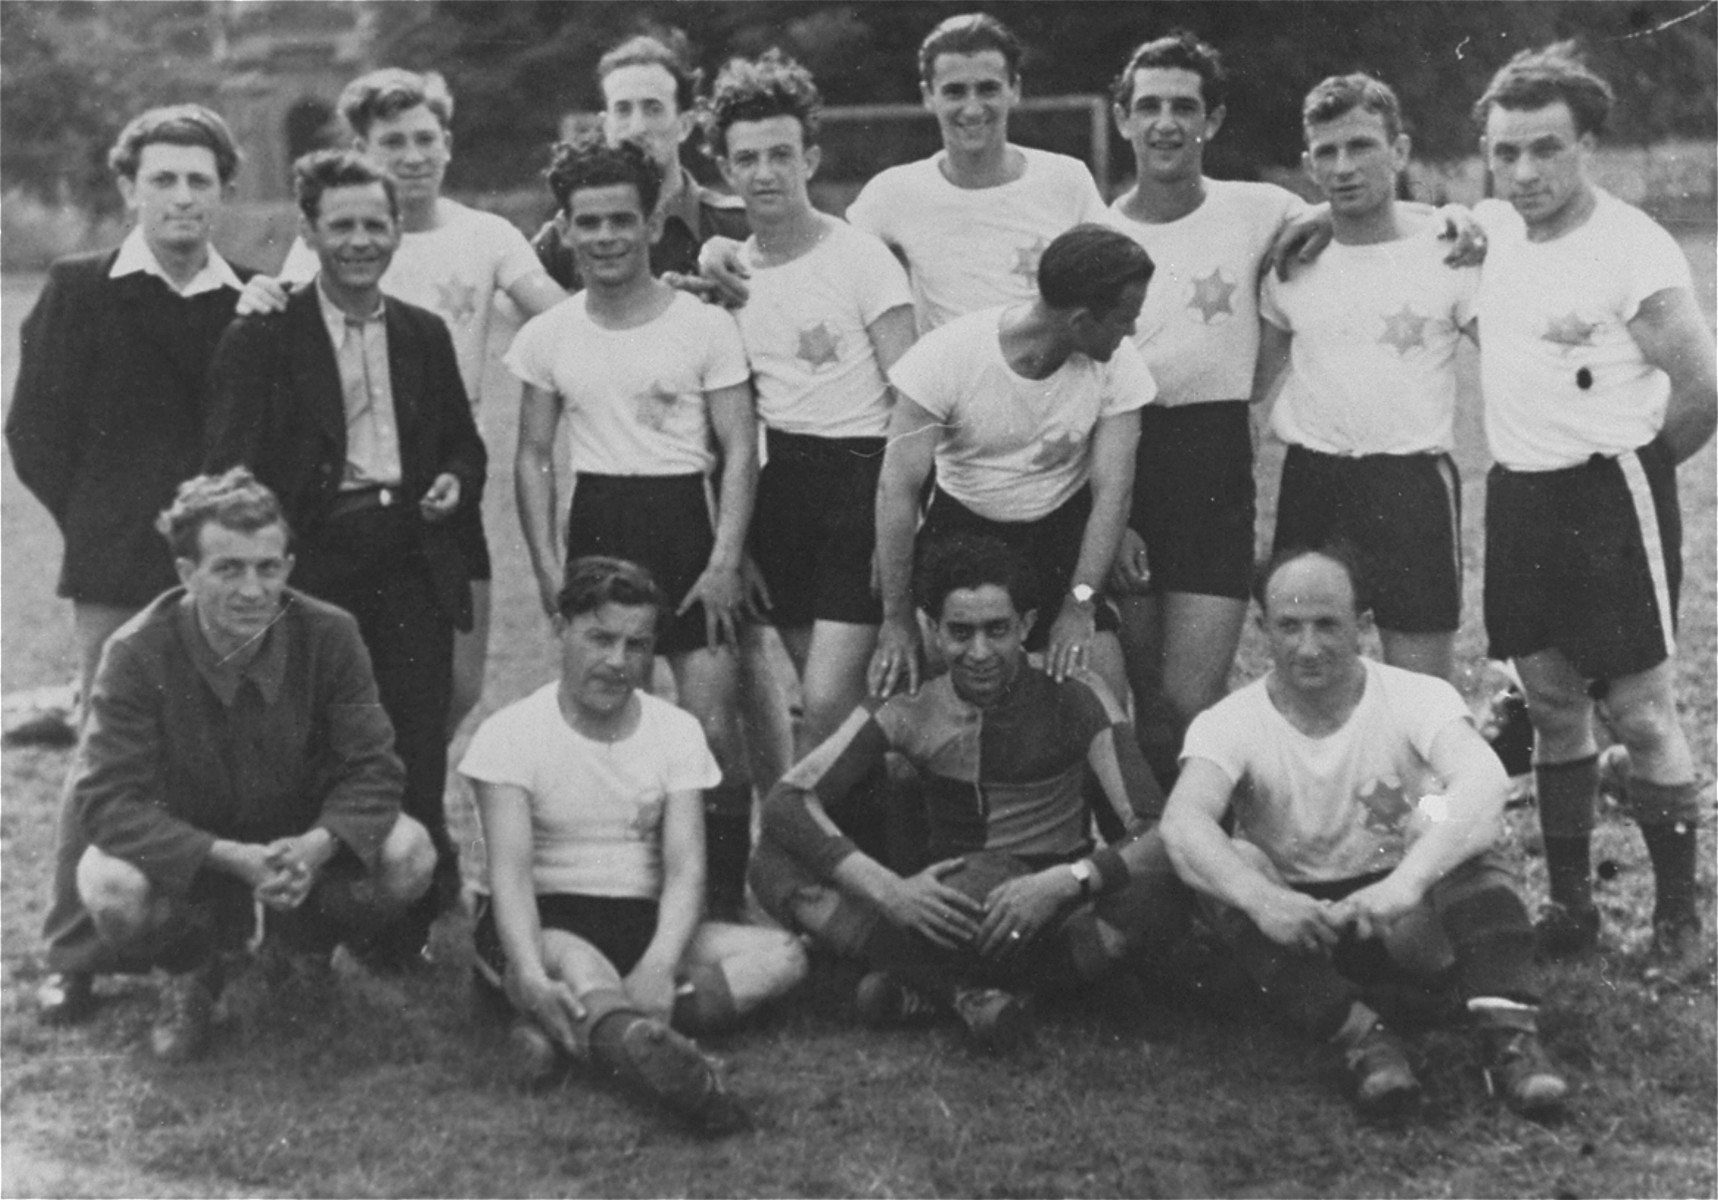 Group portrait of the Jewish soccer team in the Hanover displaced persons' camp.  Among those pictured is Ignaz (Yidel) Rotmench (first row, second from the left).